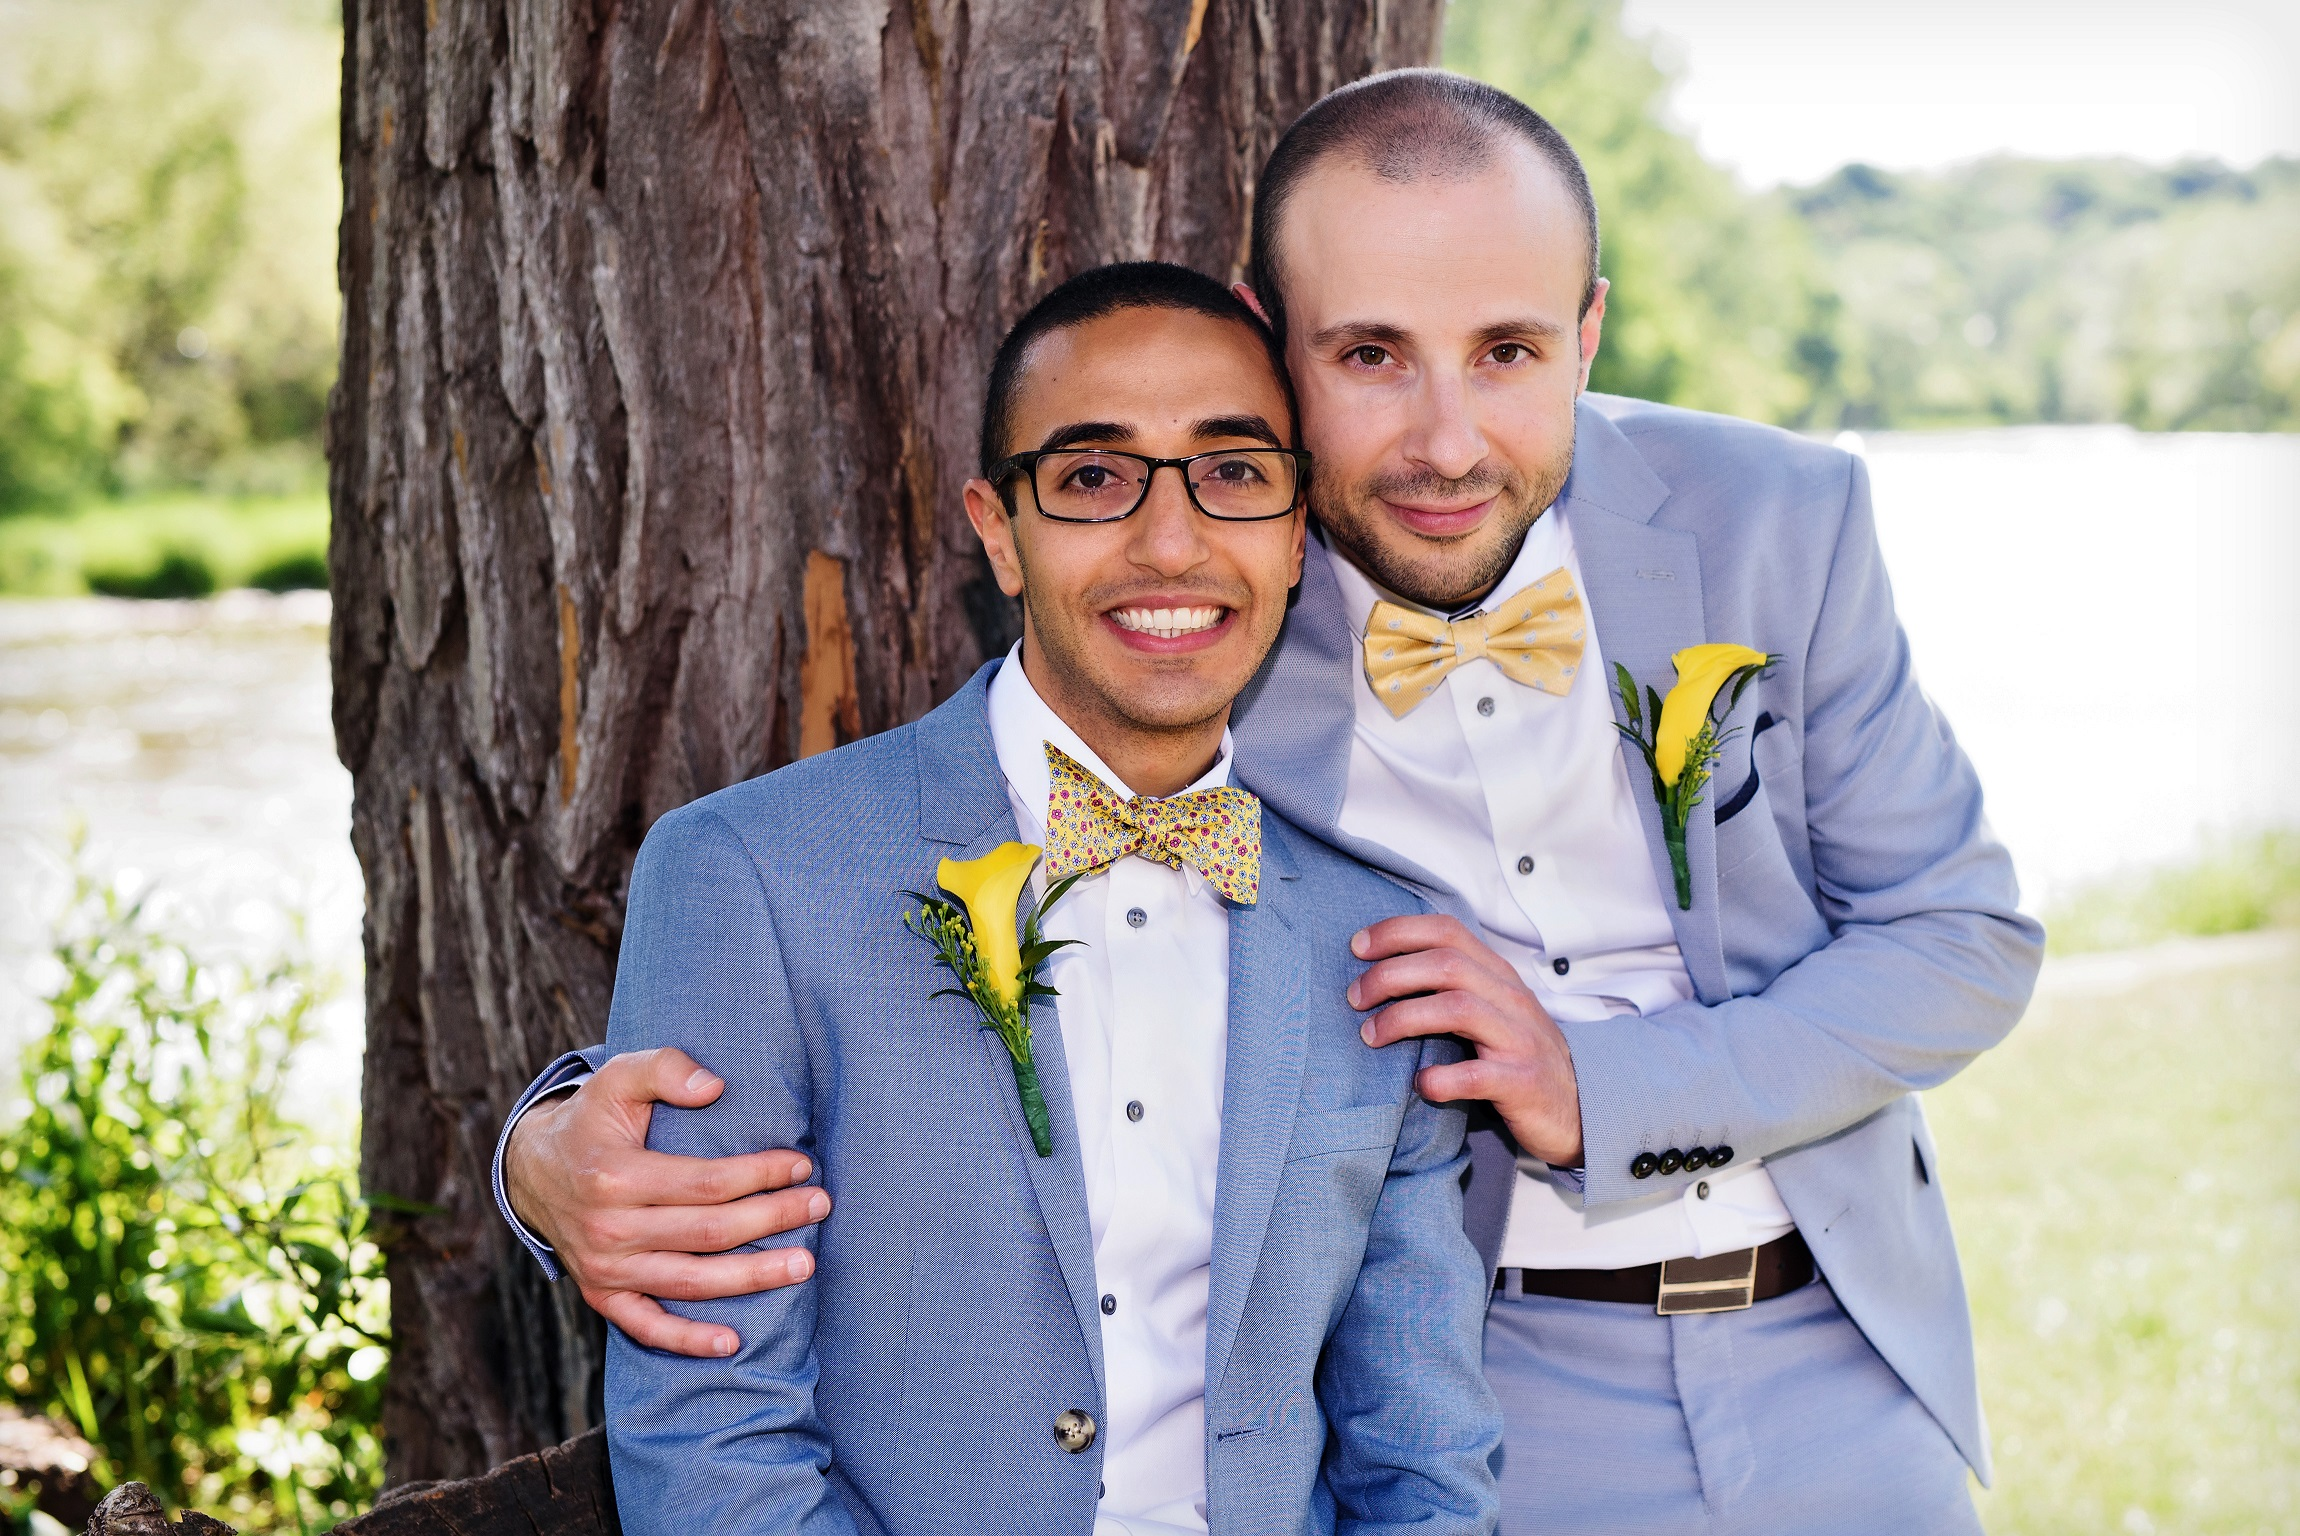 gay dating site The first and largest online gay dating site and gay community for gay, gay singles, gay males, gay men, black gays to chat and seek long-term relationship and marriage.